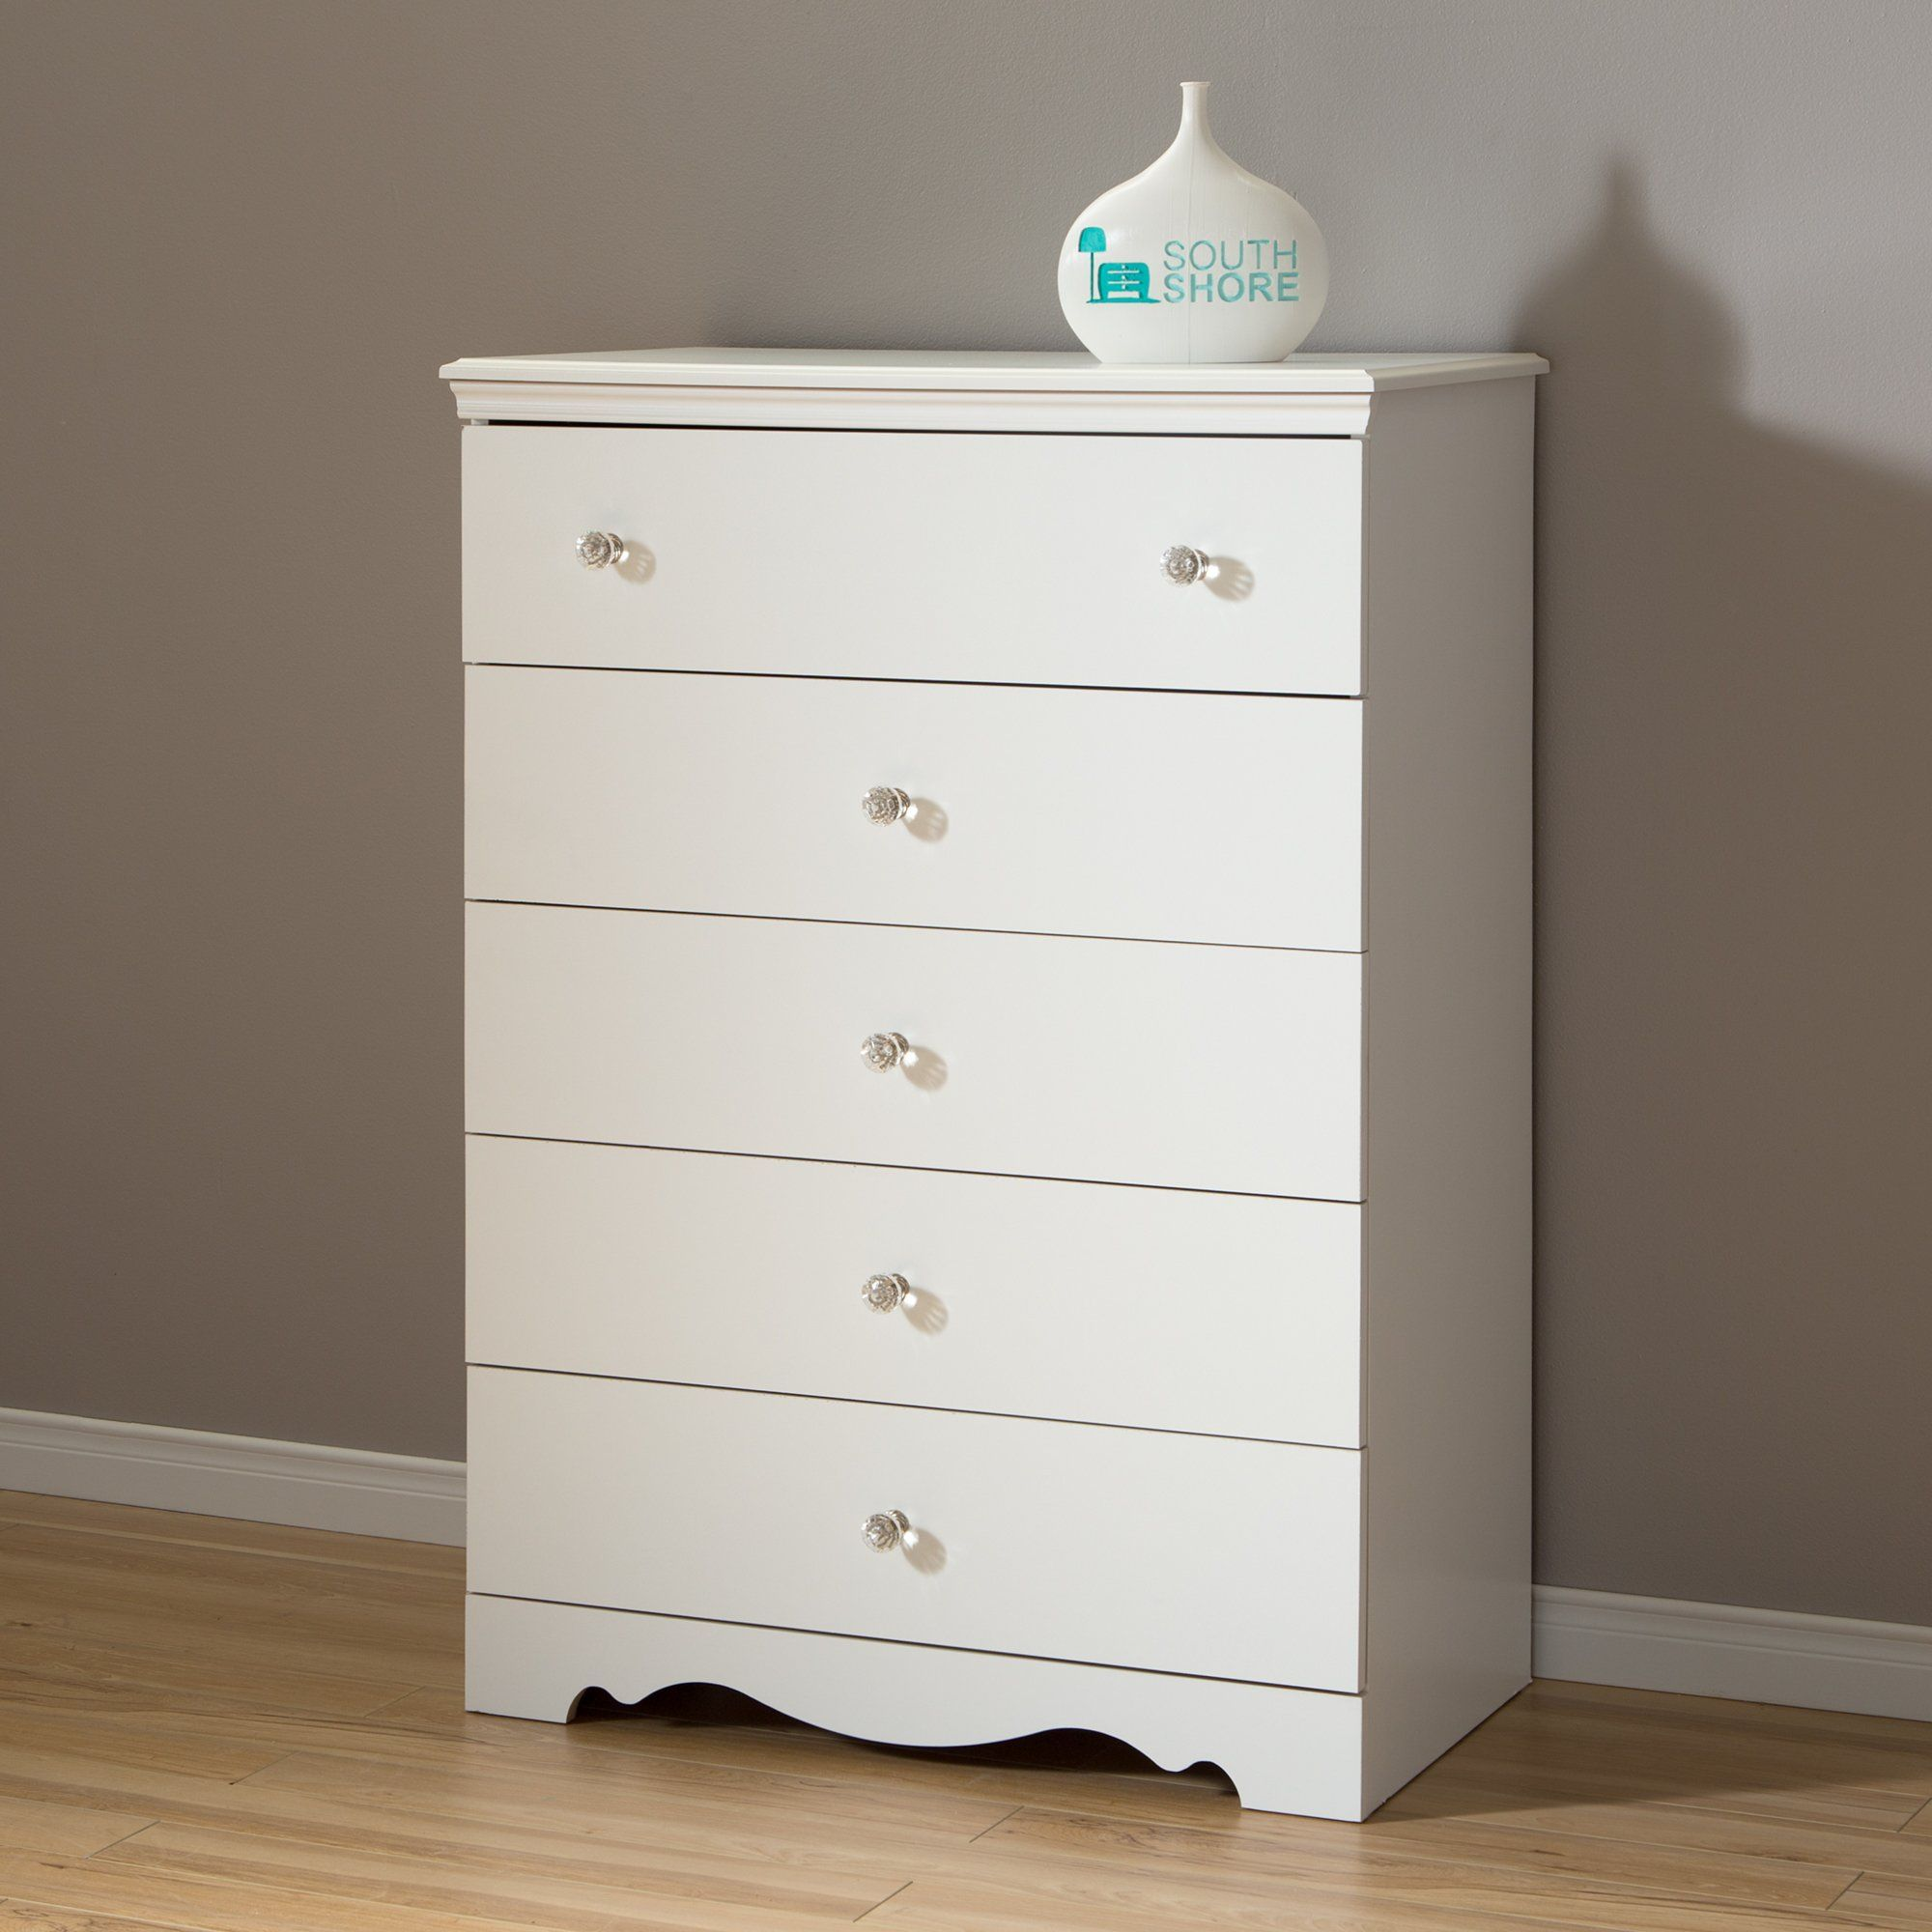 Pin By Nahomybernal On Almacenaje De Muebles Small White Dresser Chest Of Drawers Kids Bedroom Furniture [ 2000 x 2000 Pixel ]